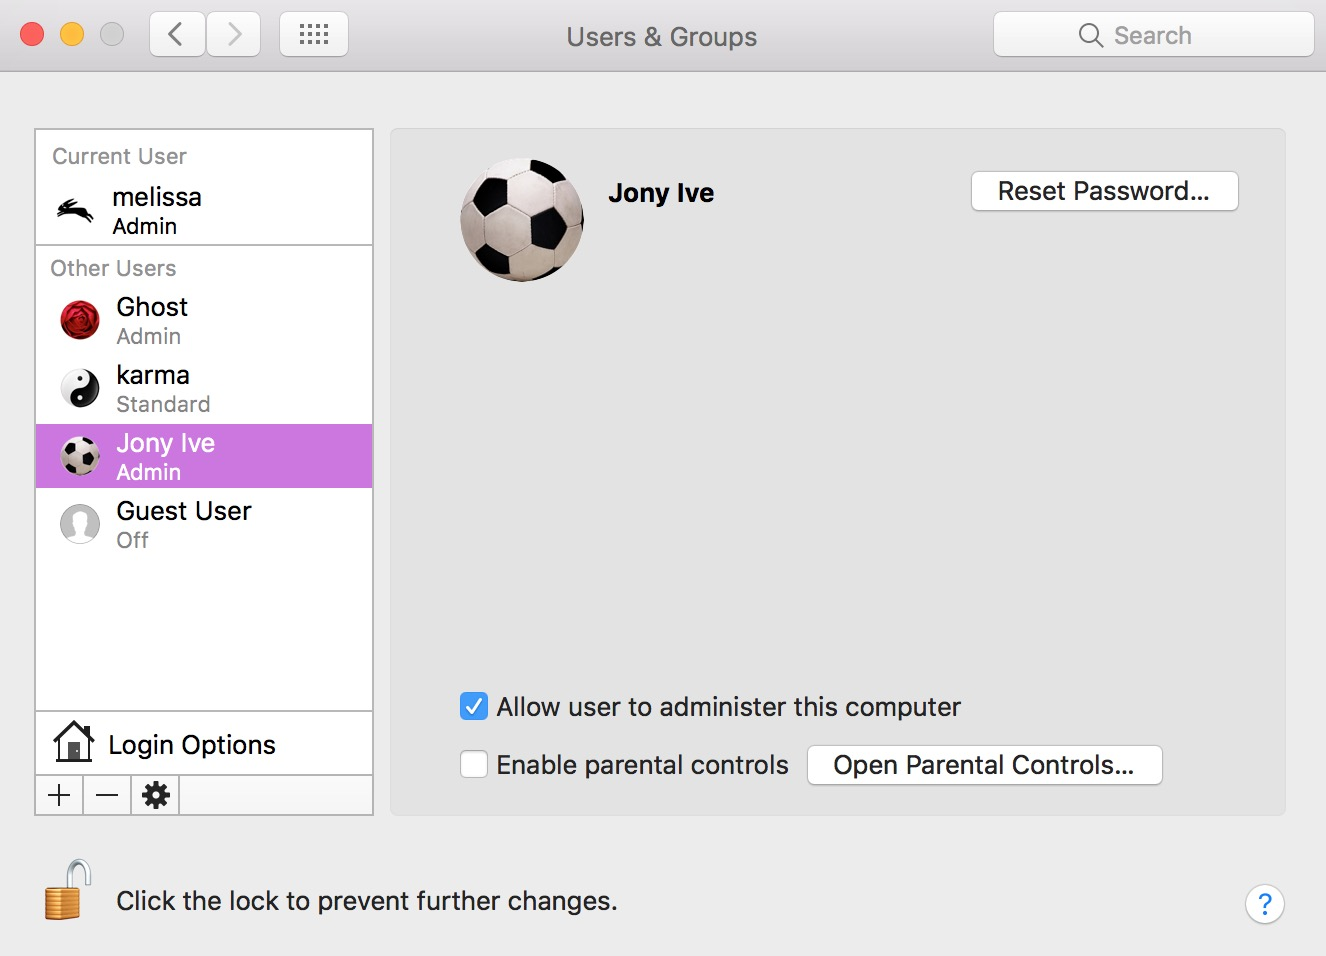 You can see which accounts have administrator access in the macOS Users & Groups System Preferences